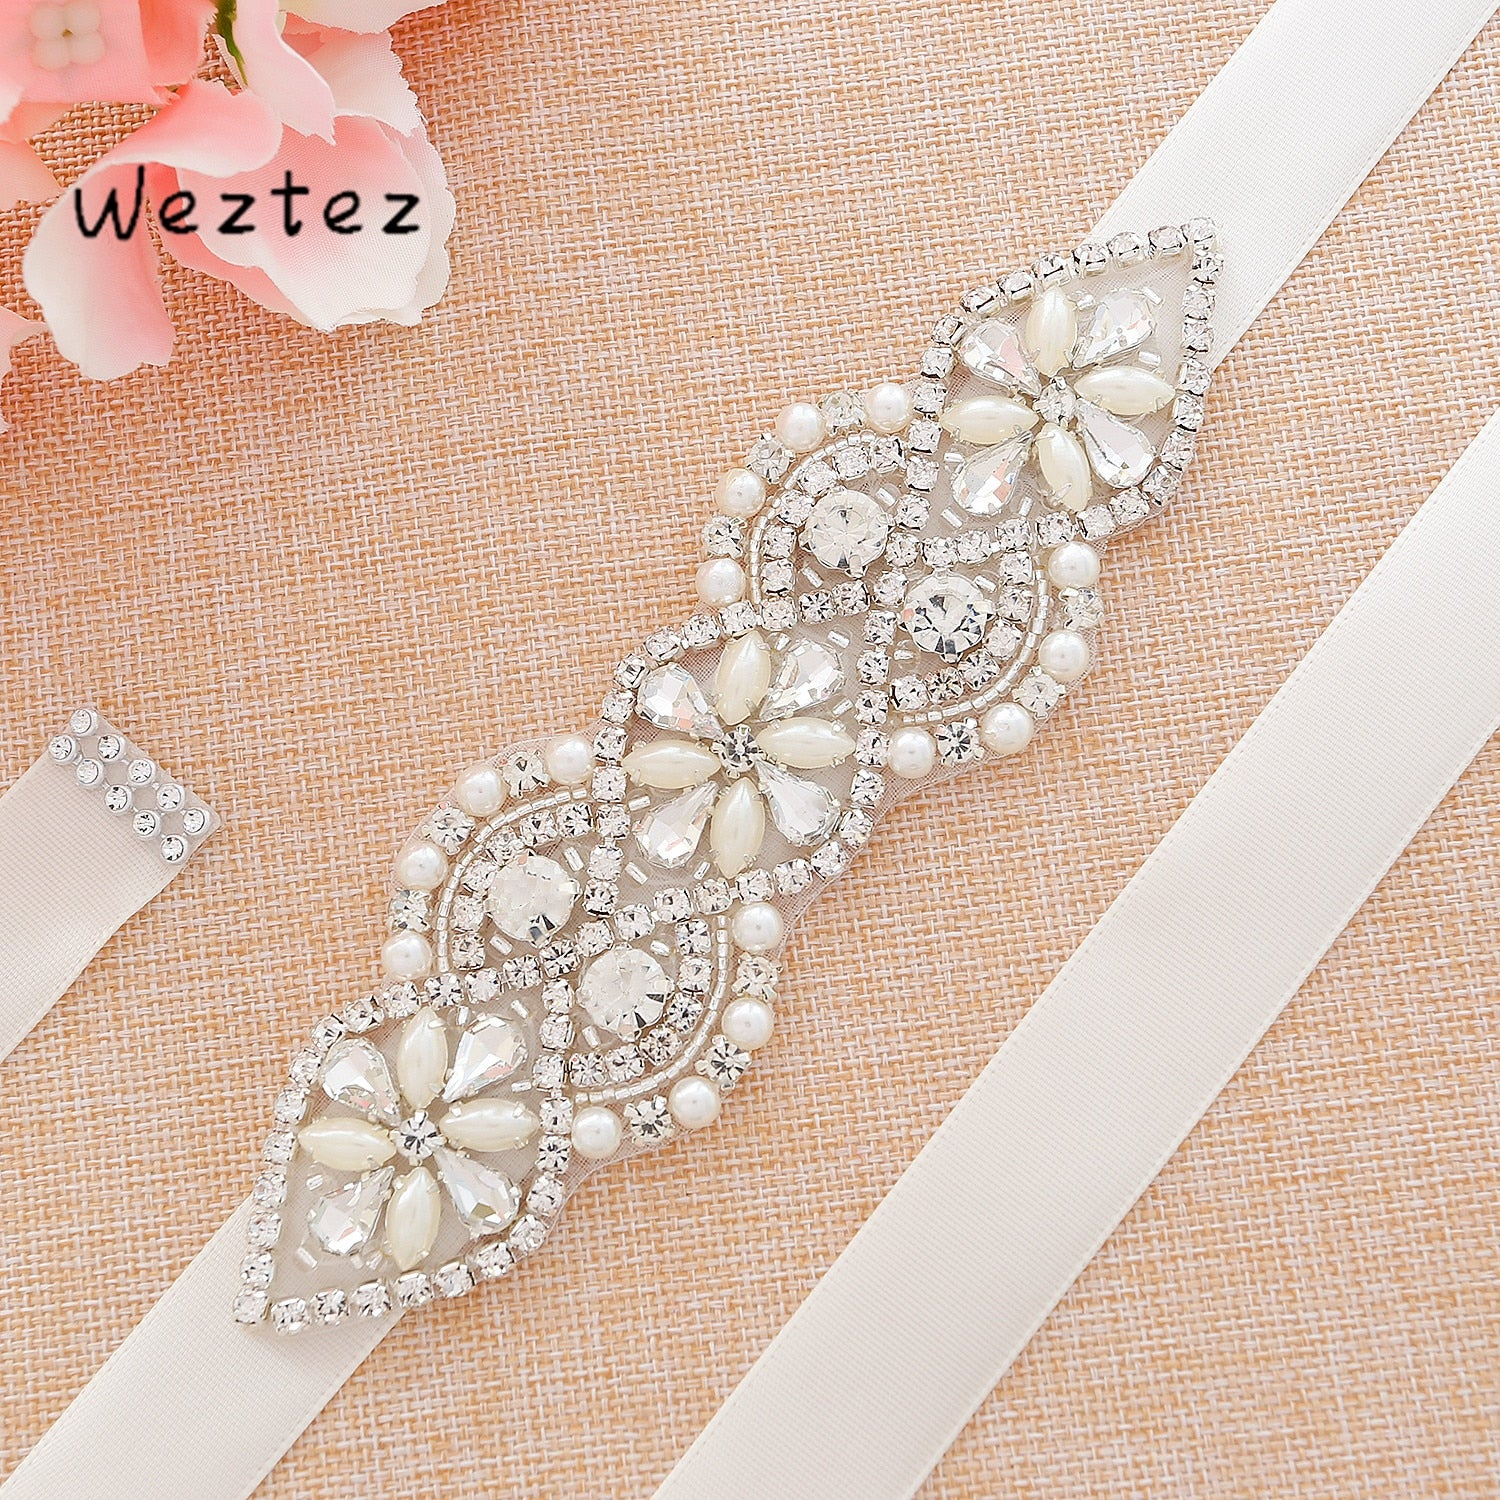 Silver Crystal Wedding Belt Rhinestones Bridal Belt Pearls Wedding Sash For Bridal Bridesmaid Dresses SD112S - Smoulder Products